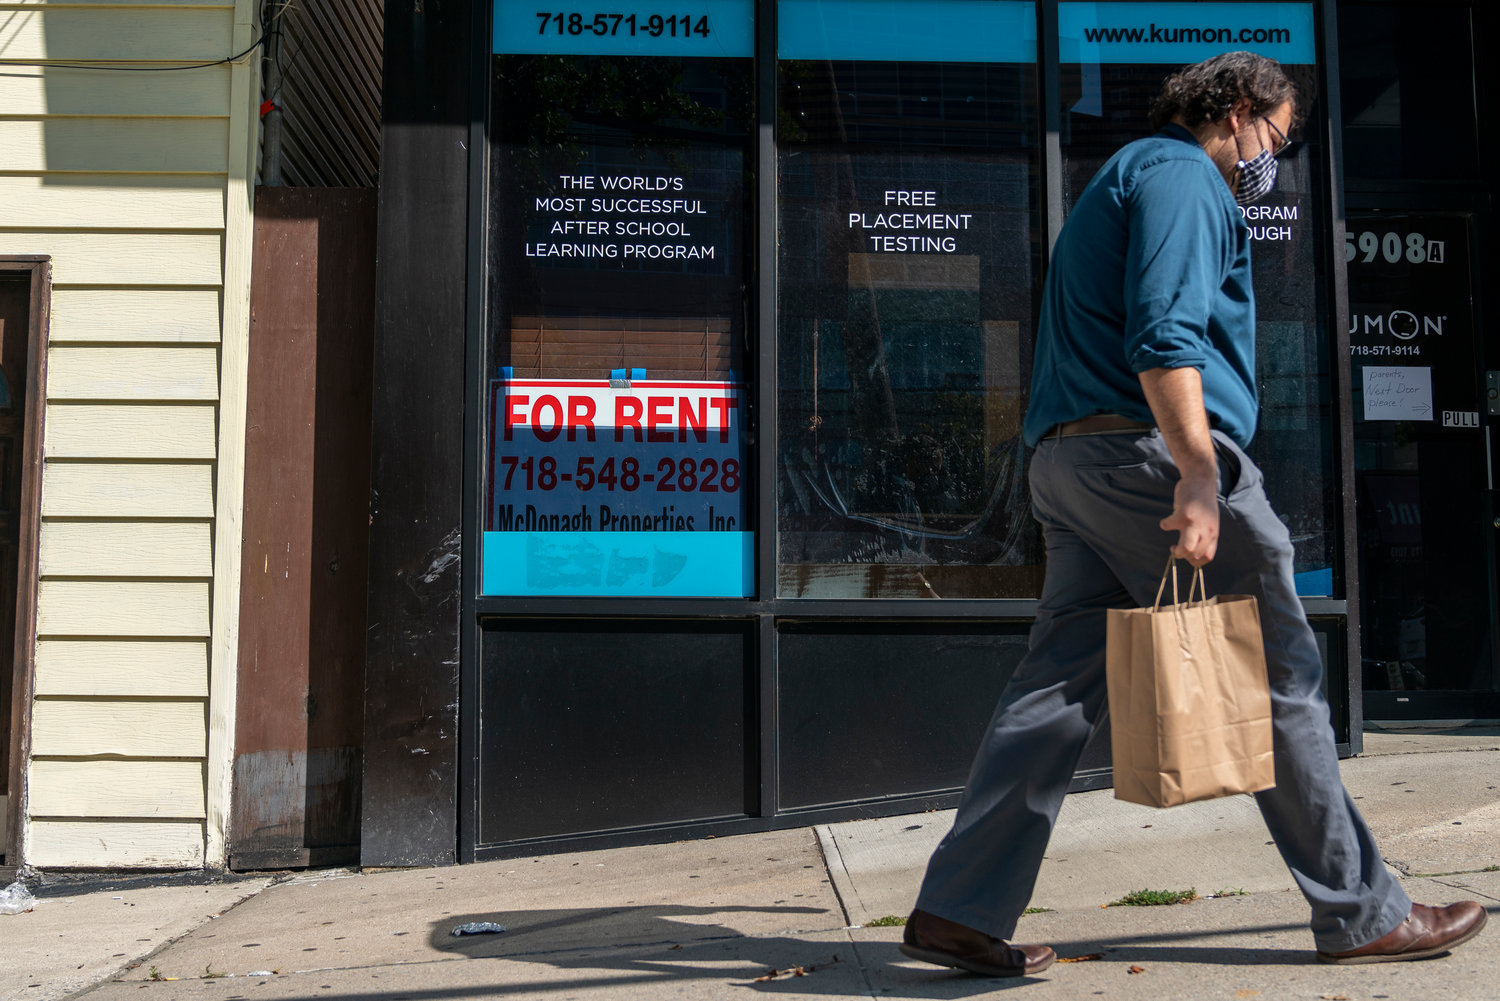 A man walks past the 'for rent' sign on the old Kumon center's window on Riverdale Avenue. The sign might be misleading, however, as this Kumon franchise didn't go out of business — It just moved next door.